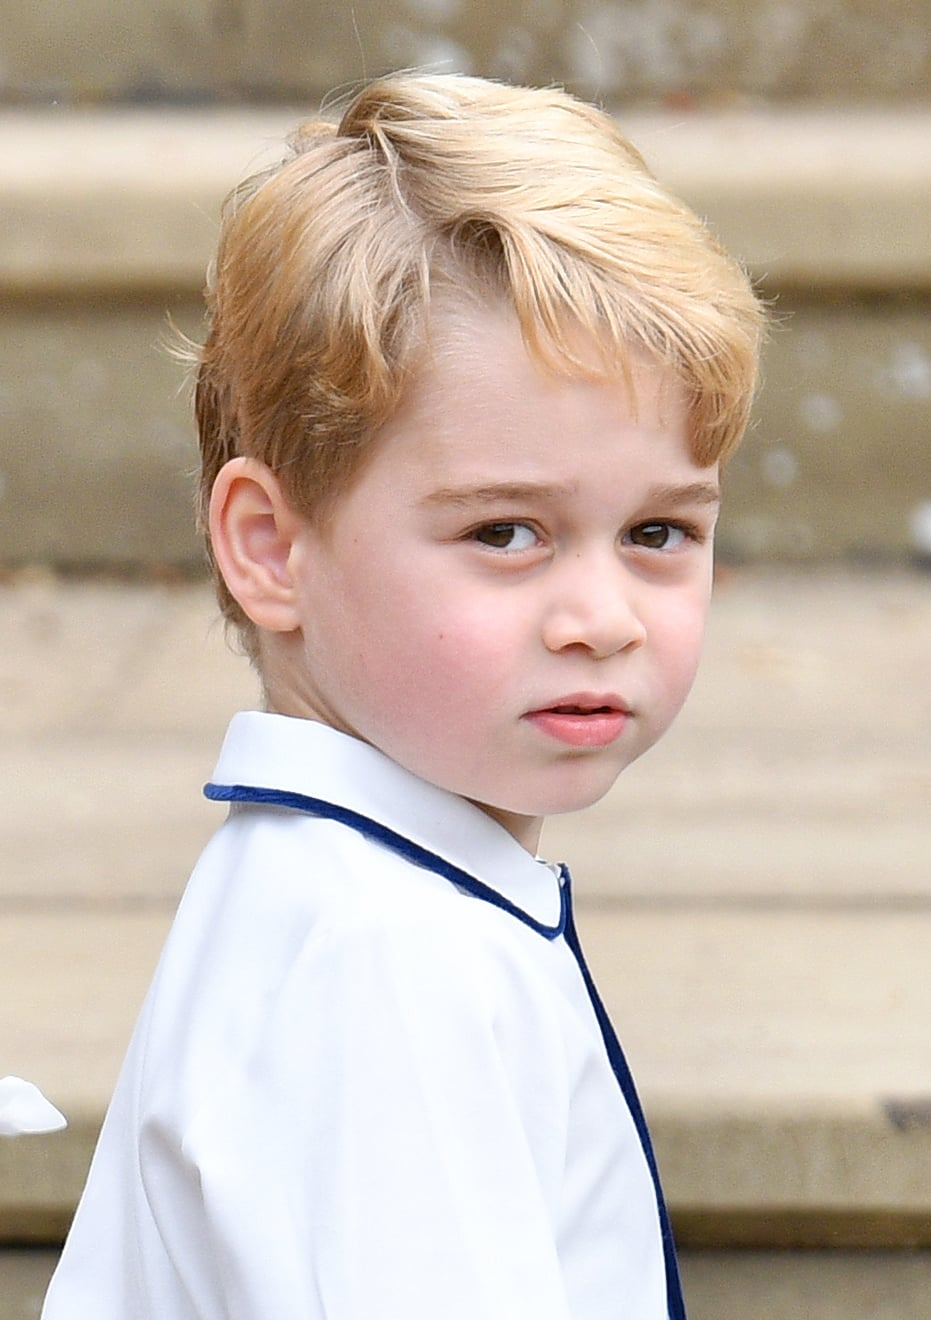 WINDSOR, UNITED KINGDOM - OCTOBER 12: (EMBARGOED FOR PUBLICATION IN UK NEWSPAPERS UNTIL 24 HOURS AFTER CREATE DATE AND TIME) Prince George of Cambridge attends the wedding of Princess Eugenie of York and Jack Brooksbank at St George's Chapel on October 12, 2018 in Windsor, England. (Photo by Pool/Max Mumby/Getty Images)